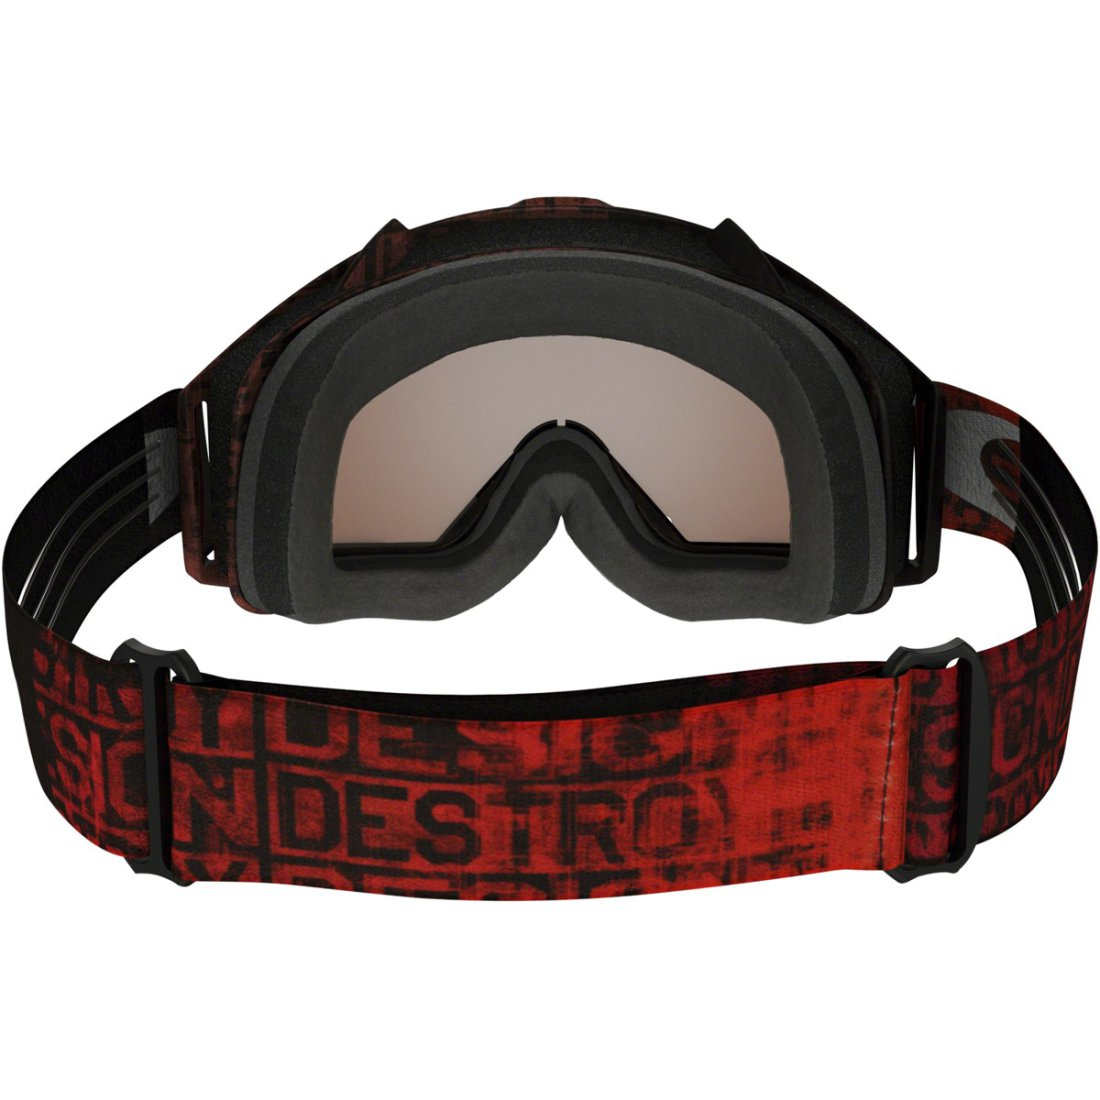 444c838bb1ff6 Máscara   Óculos OAKLEY Proven MX Distress Tagline Red Black Iridium ...